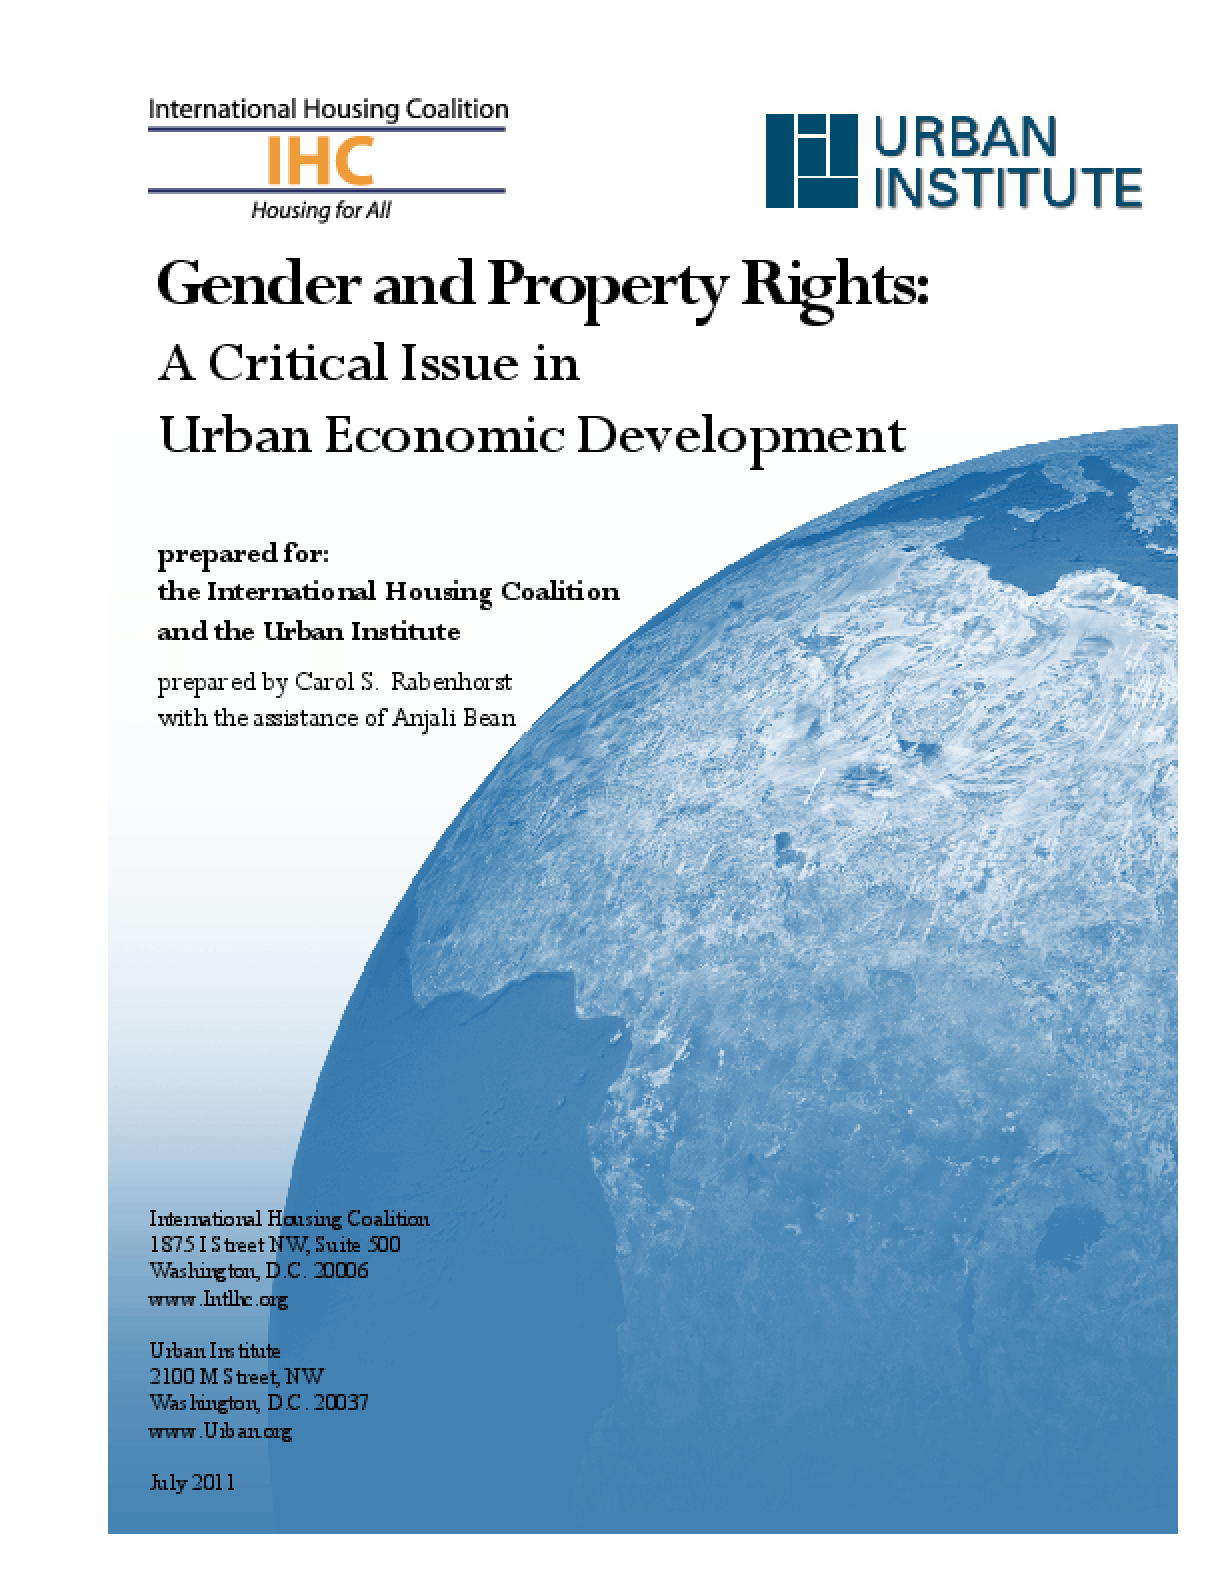 Gender and Property Rights: A Critical Issue in Urban Economic Development